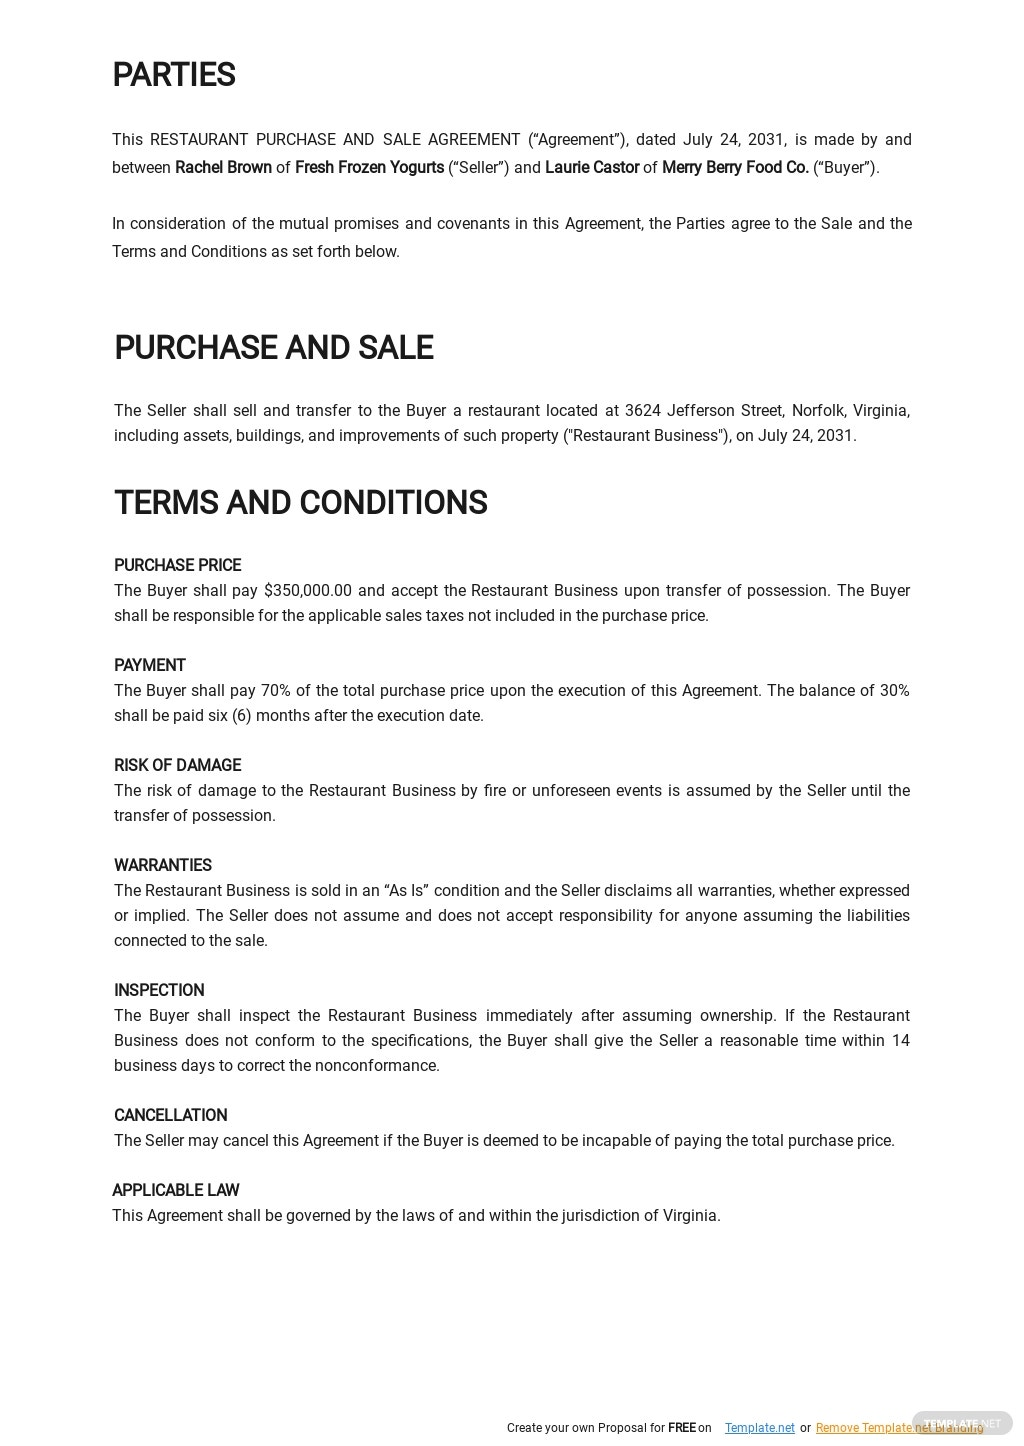 Restaurant Purchase and Sale Agreement Template 1.jpe